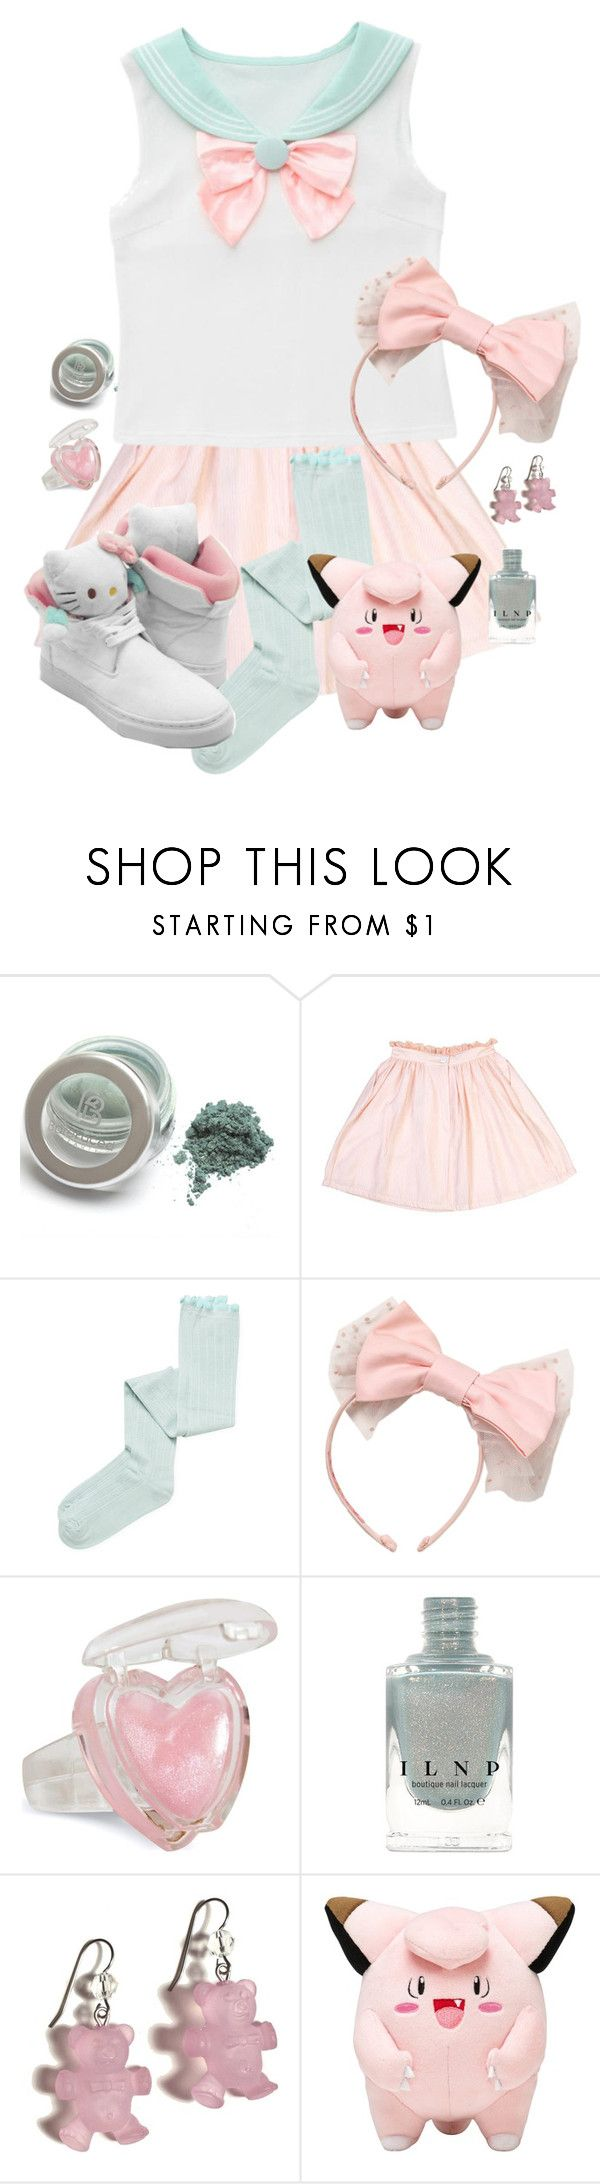 """Pastel Cutie 🎀"" by adventuretimekitty ❤ liked on Polyvore featuring Limedrop, Intimately Free People, Hello Kitty, Tarina Tarantino, Pink, Blue and kawaii"